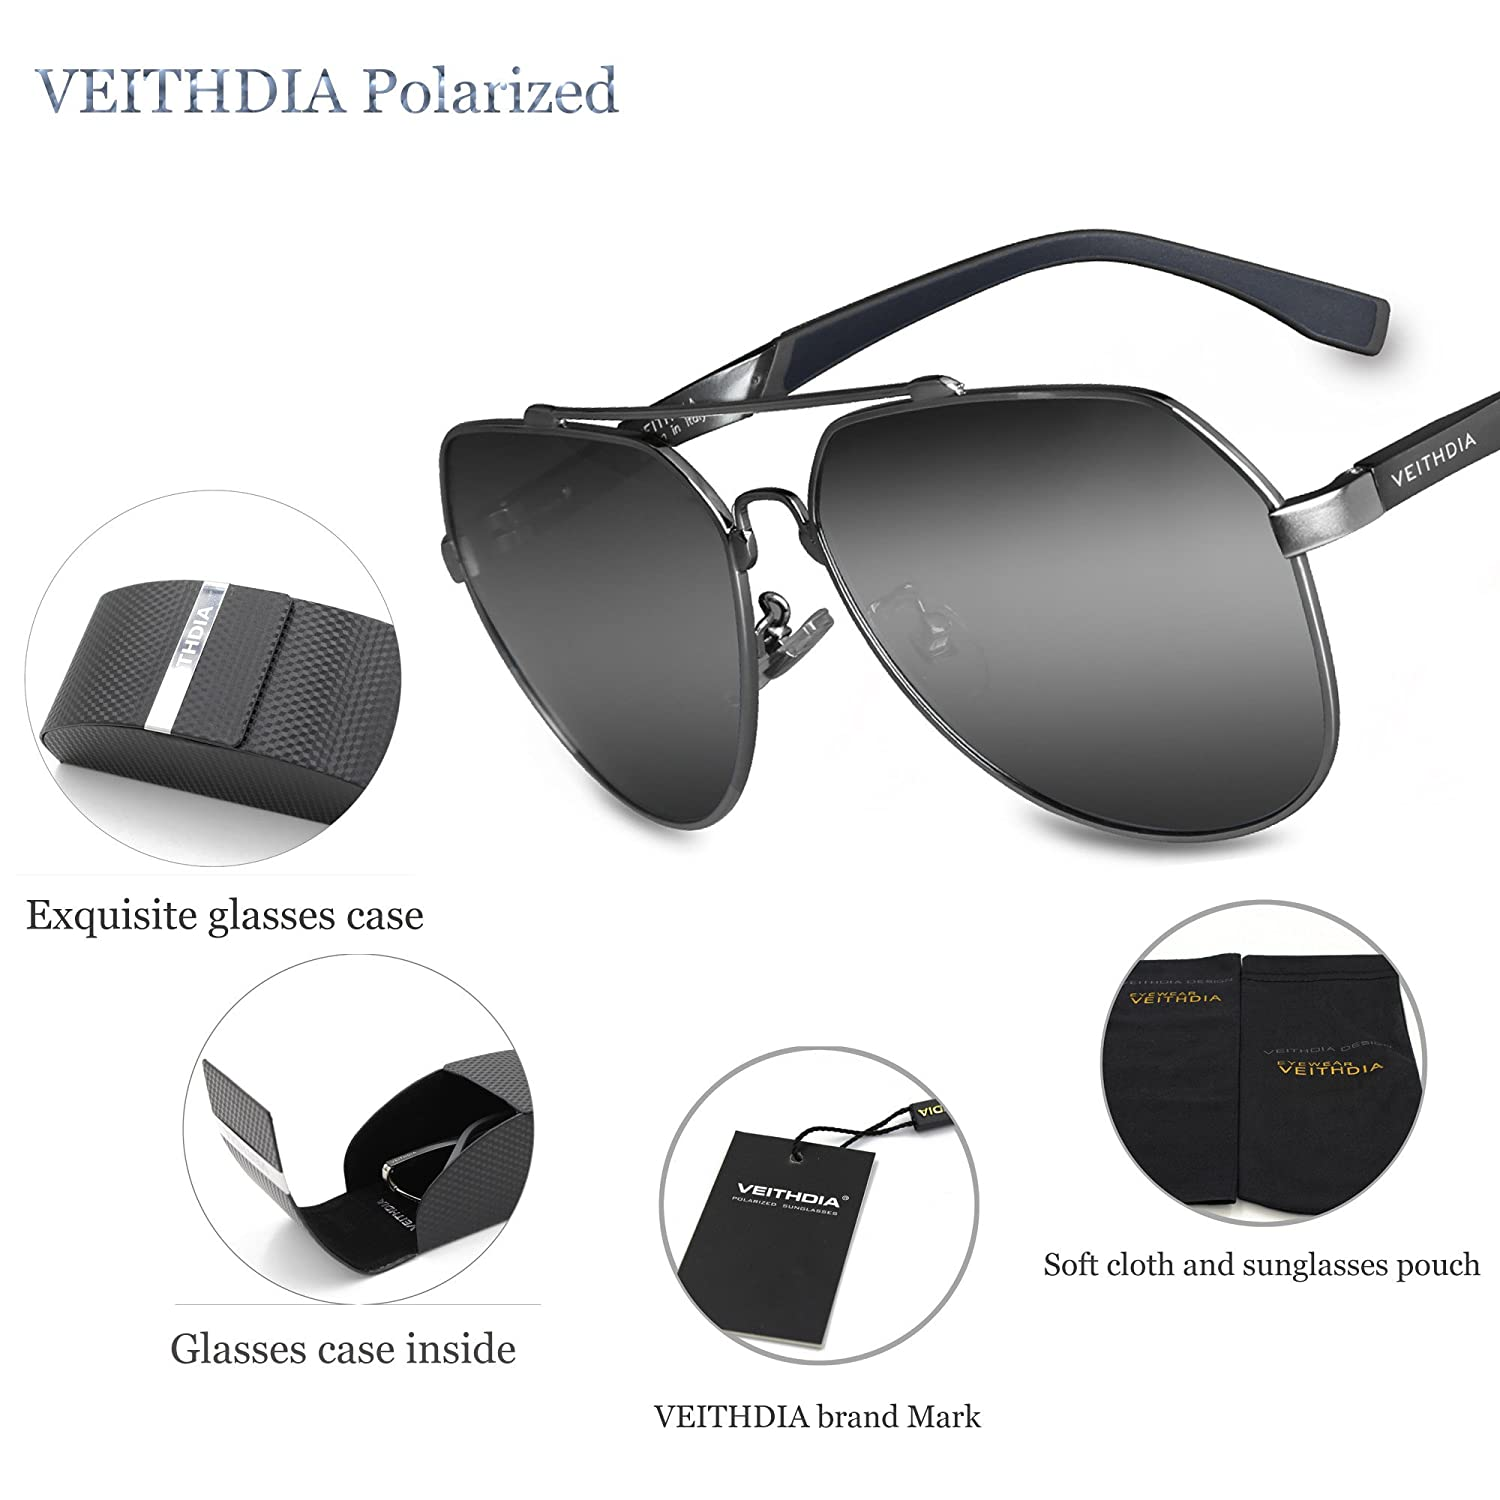 70b1a335ded Amazon.com  VEITHDIA 3598 Adjustable HD Polarized Aviator Sunglasses for Fishing  Driving (Grey